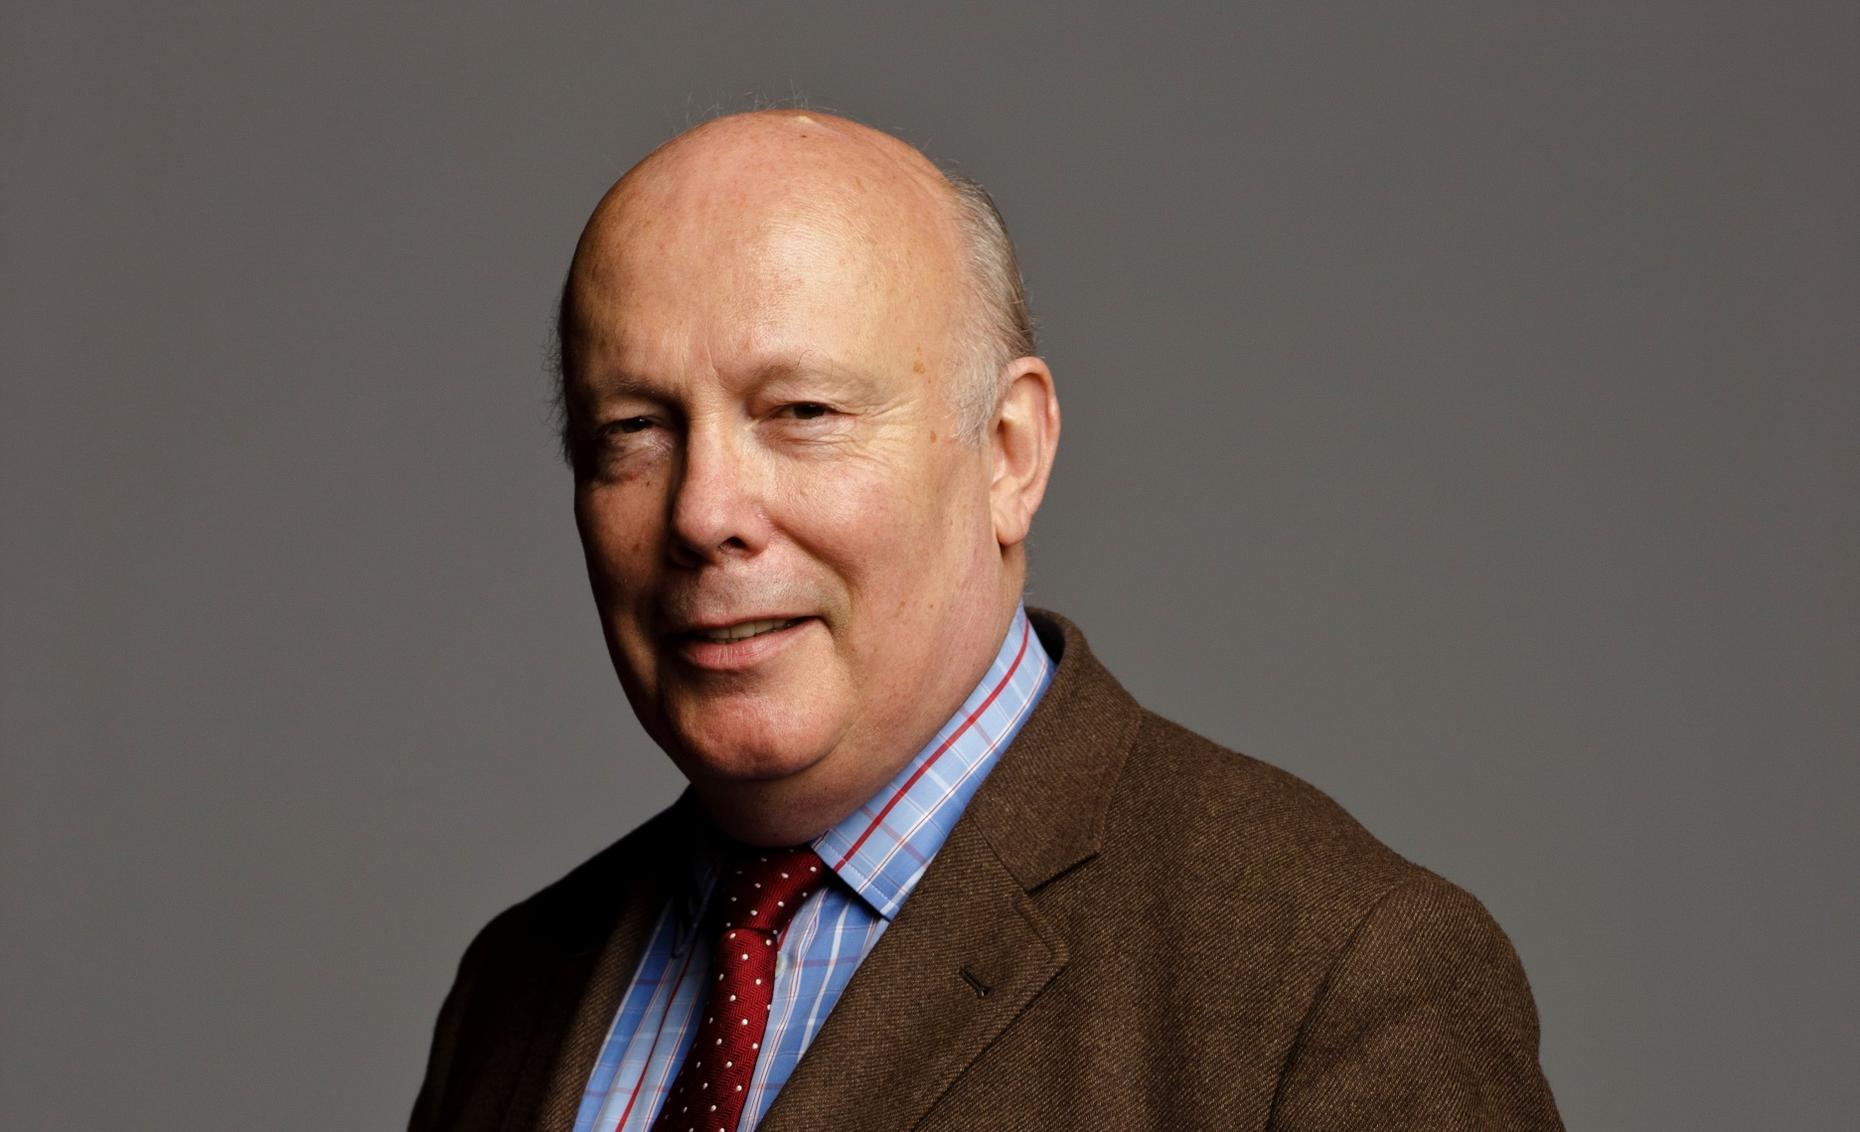 Video: 'Downton Abbey' Creator Julian Fellowes in Conversation with John Hockenberry